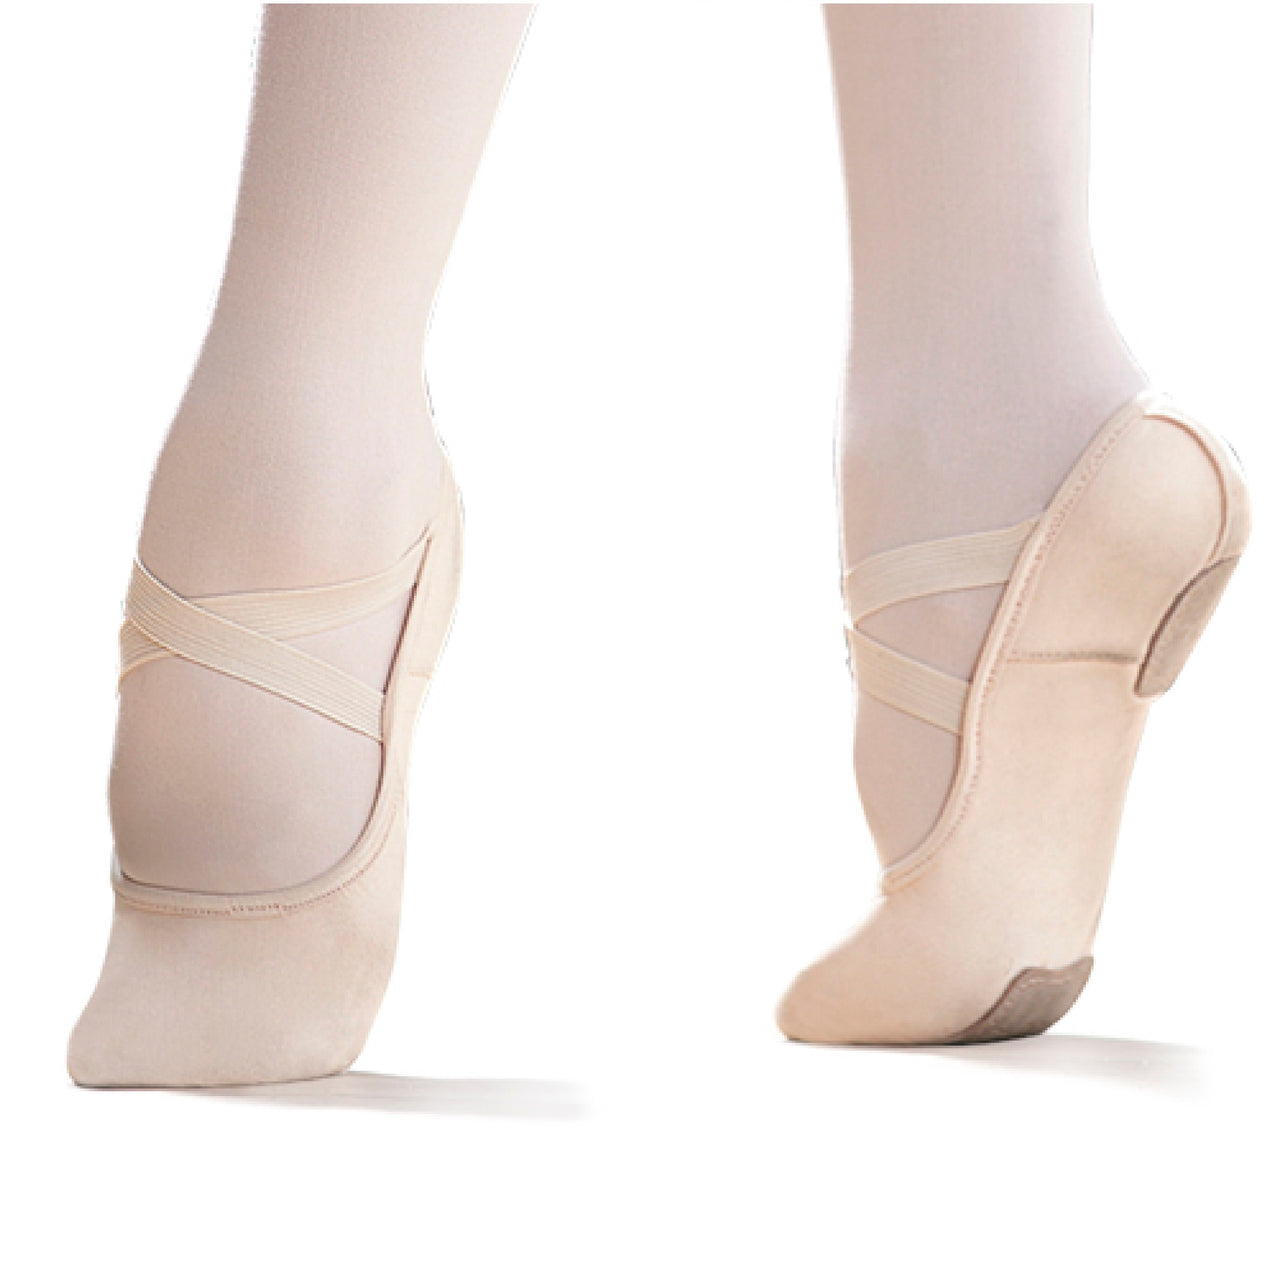 b1f00643e Capezio 2037W - Hanami Ballet Shoe Adult – The Dance Shop